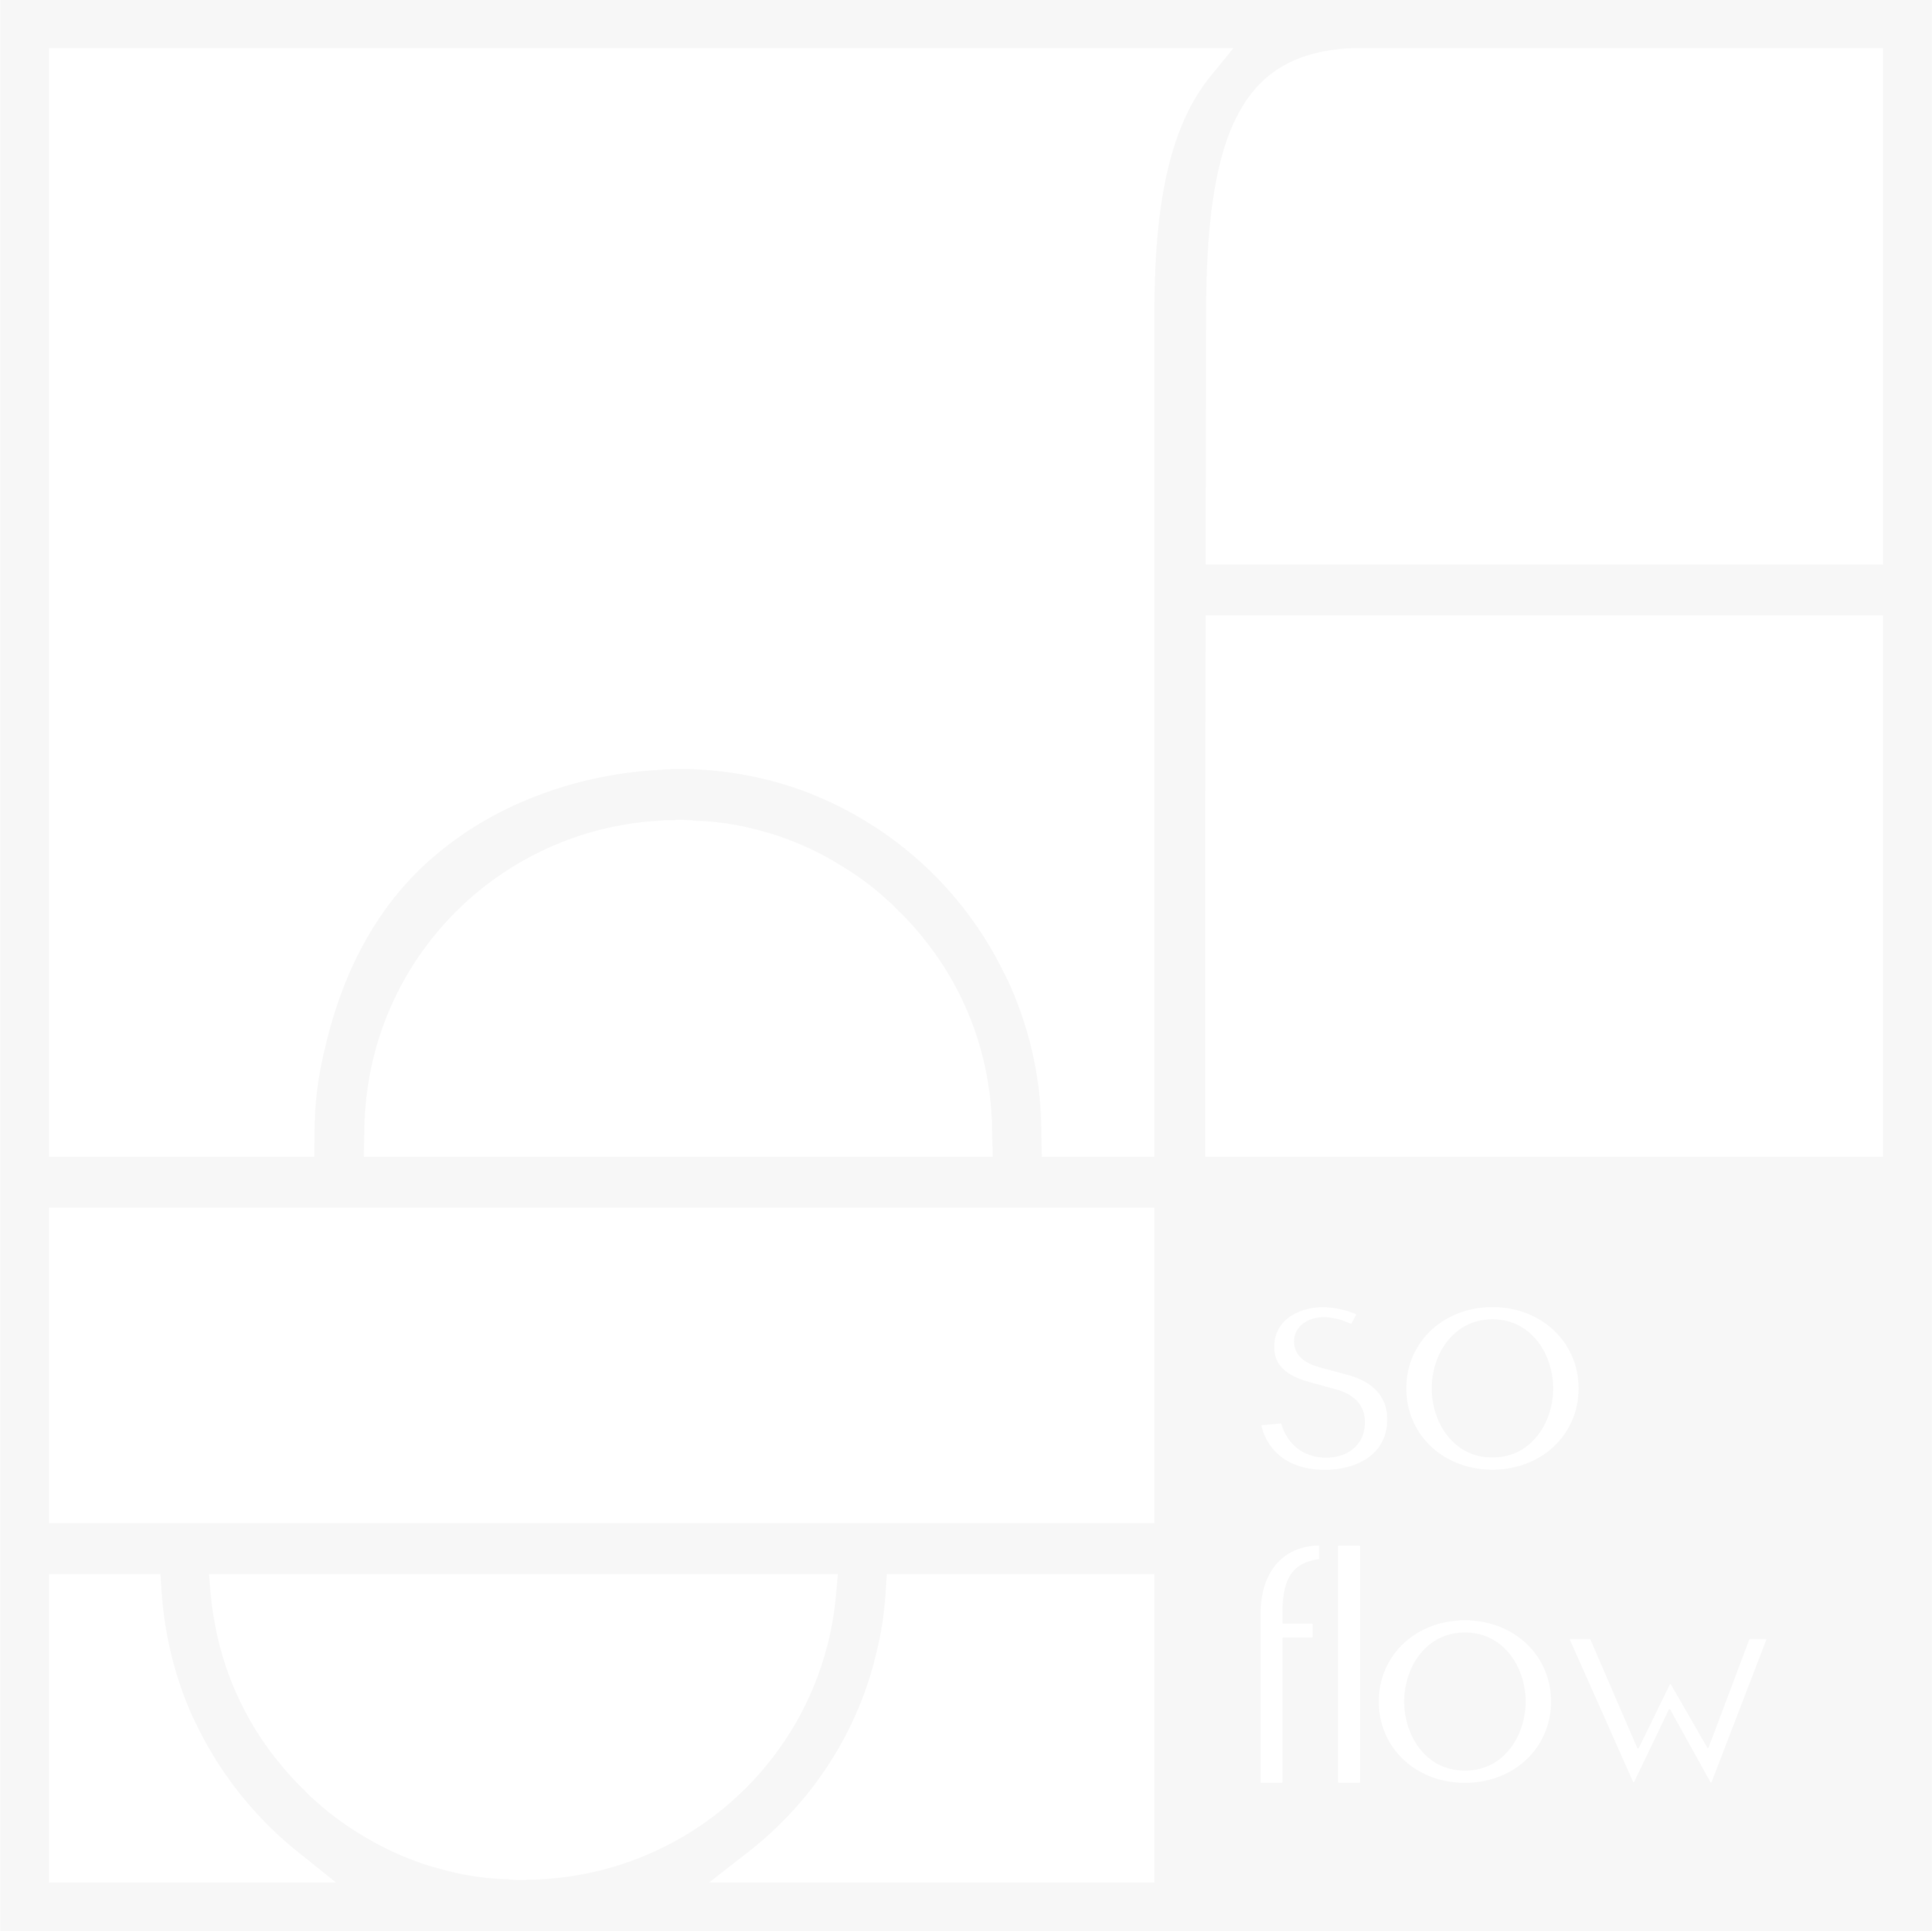 logo of soflow, job coach and professional organizer in white